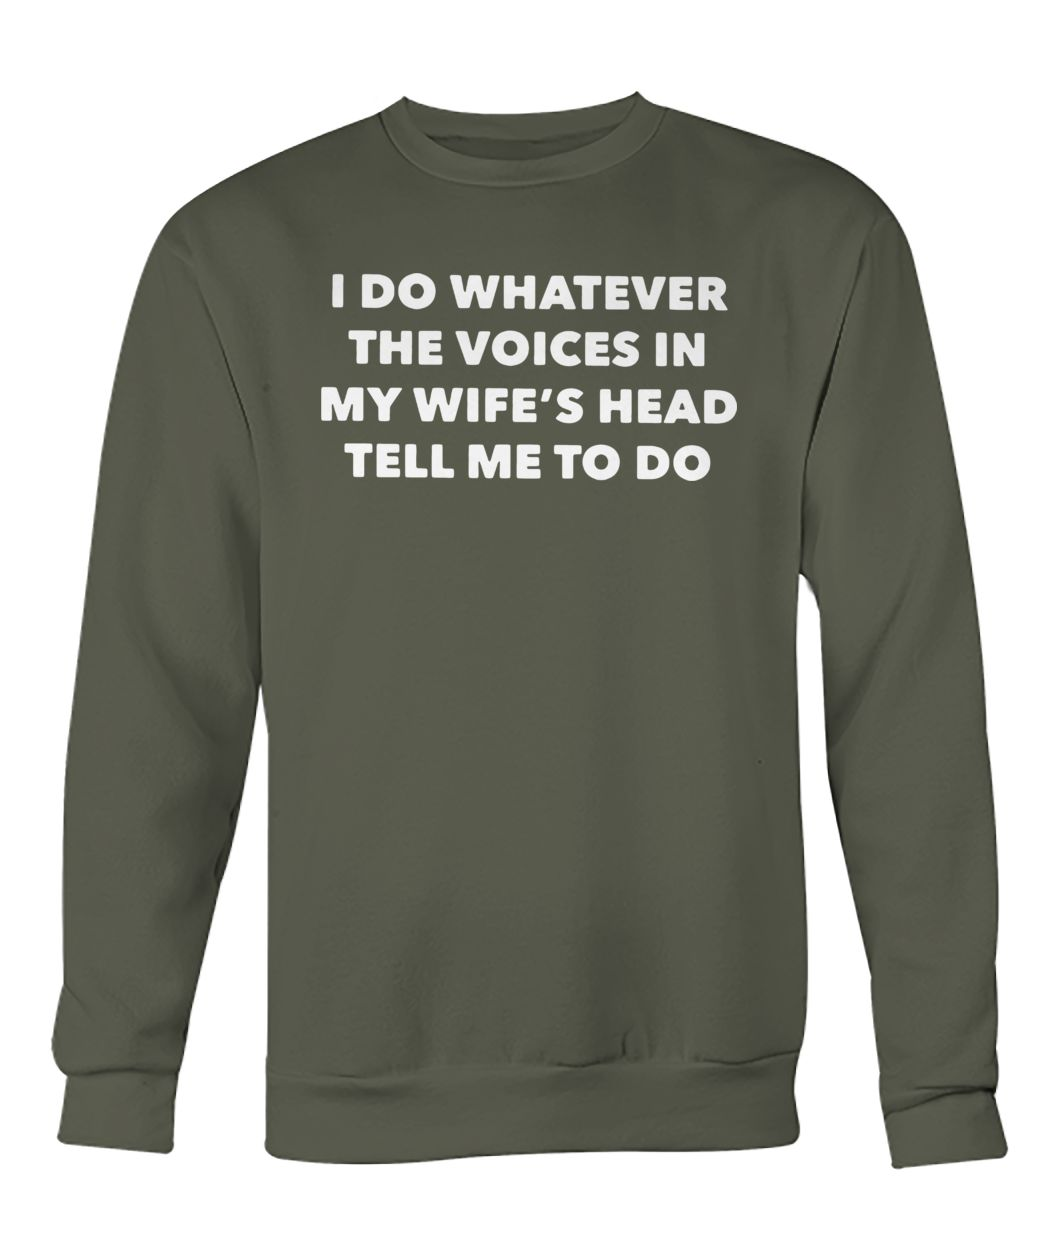 I do whatever the voices in my wife's head tell me to do crew neck sweatshirt